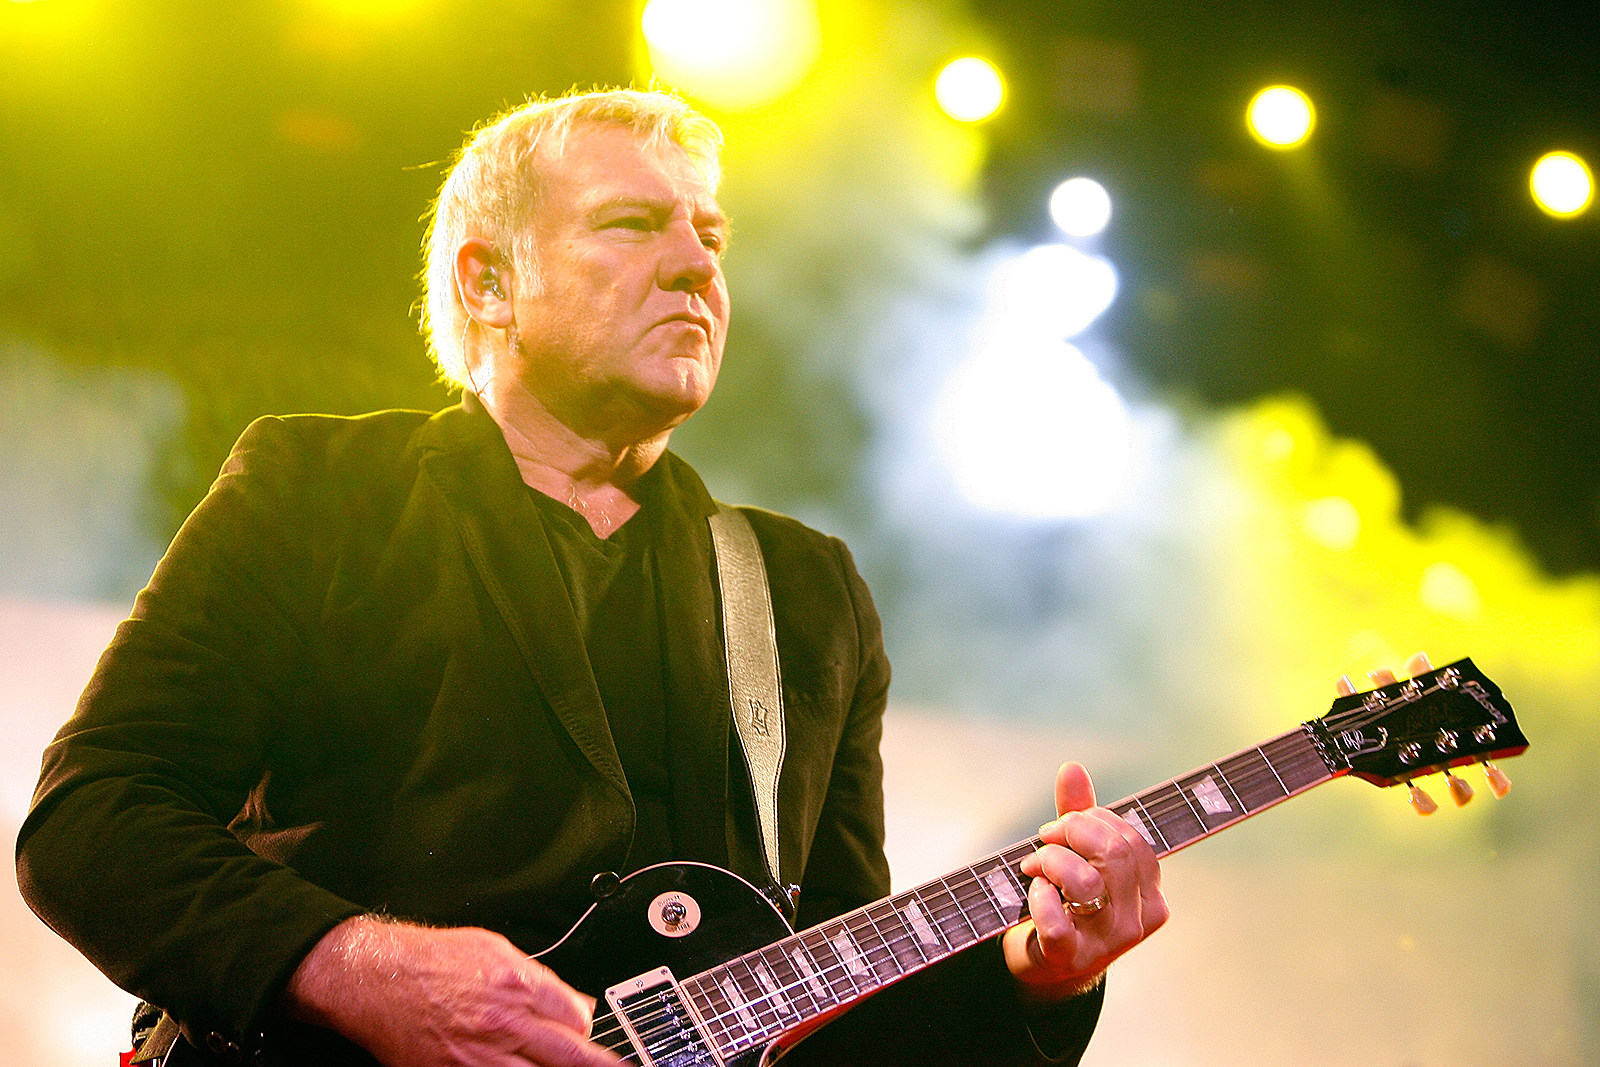 Alex Lifeson Says Another Tour Probably Isn't 'in My Cards'